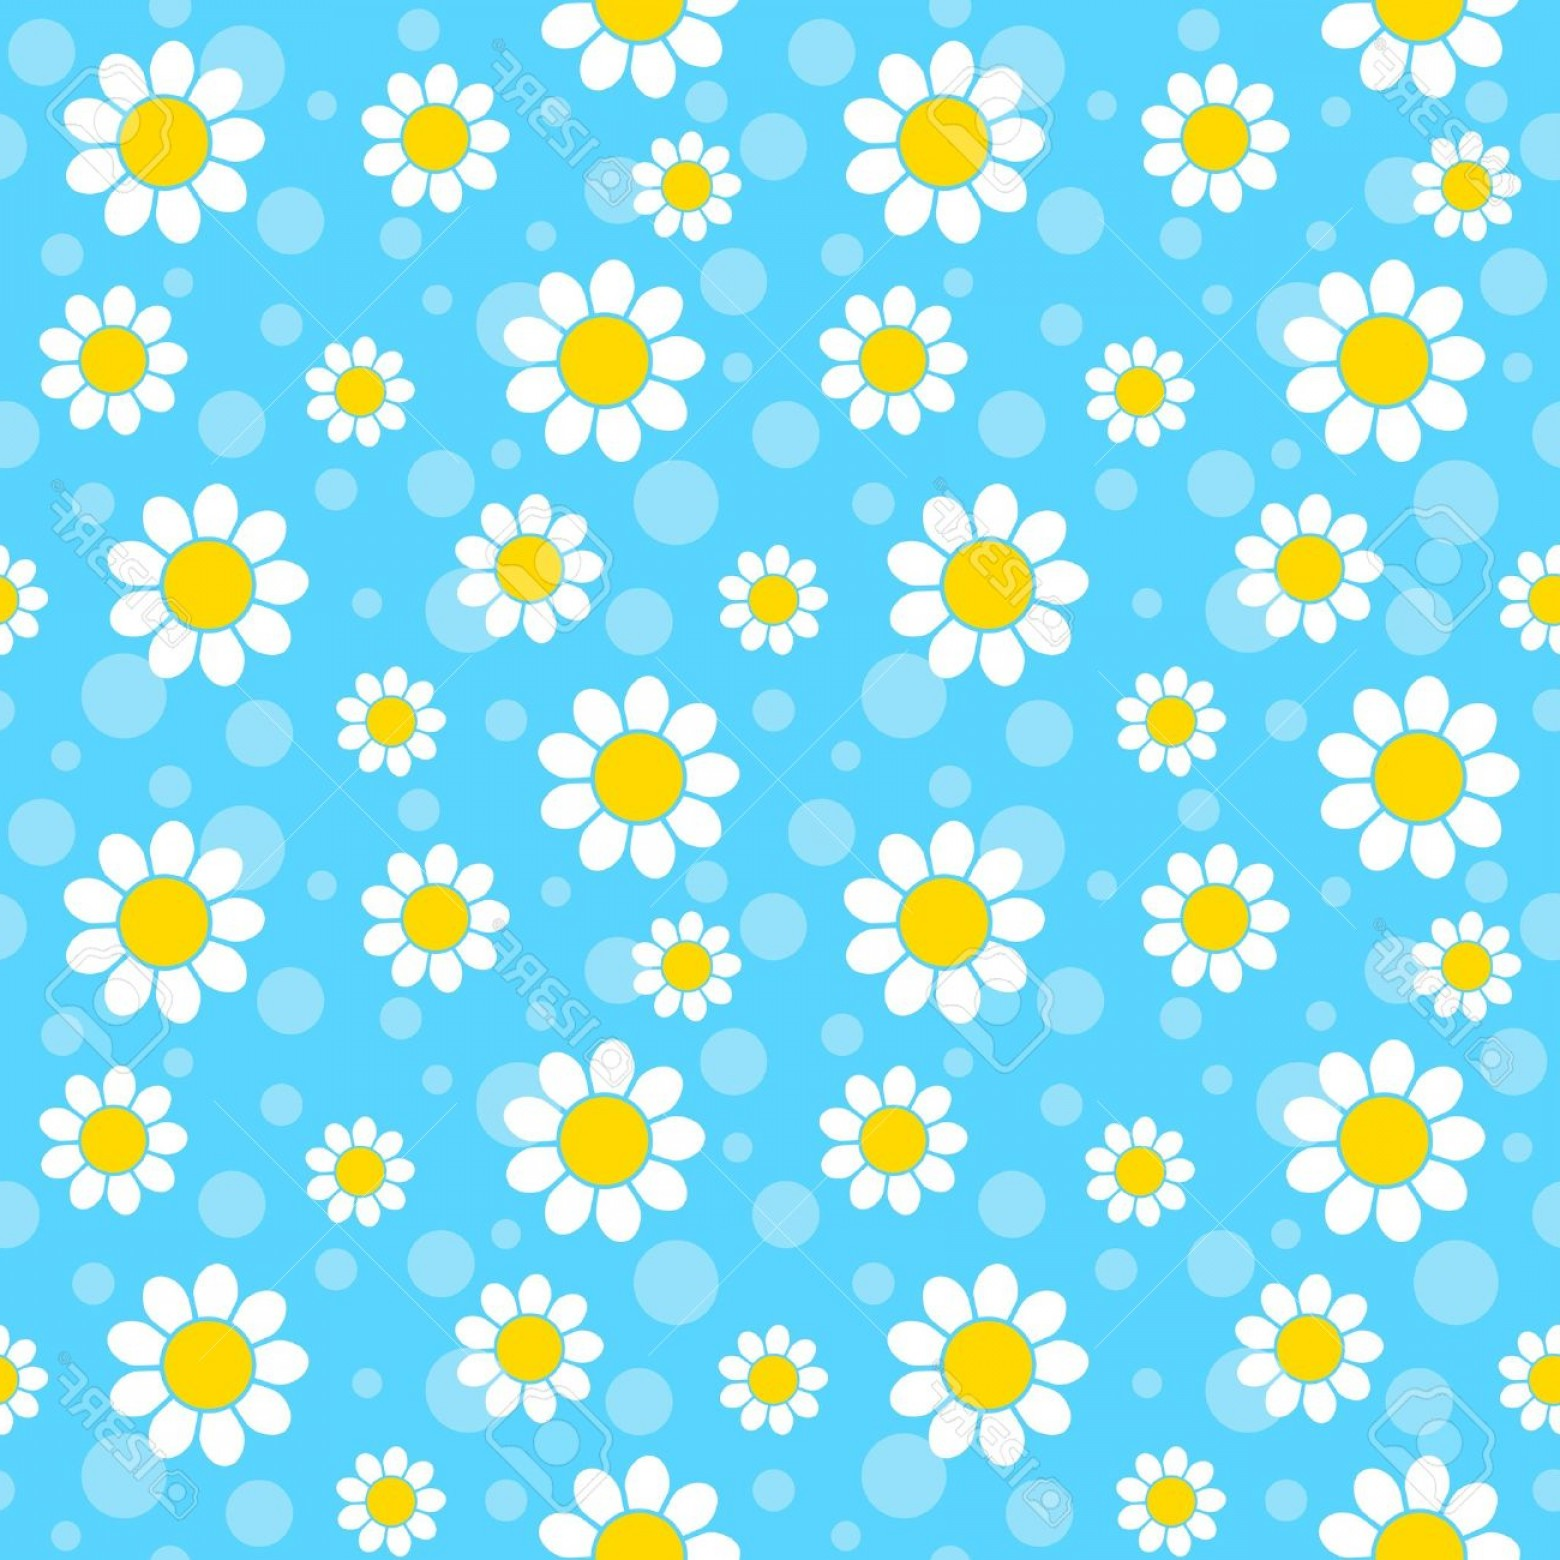 Blue Daisy Flower Vector: Photowhite Flowers On Blue Background Seamless Pattern